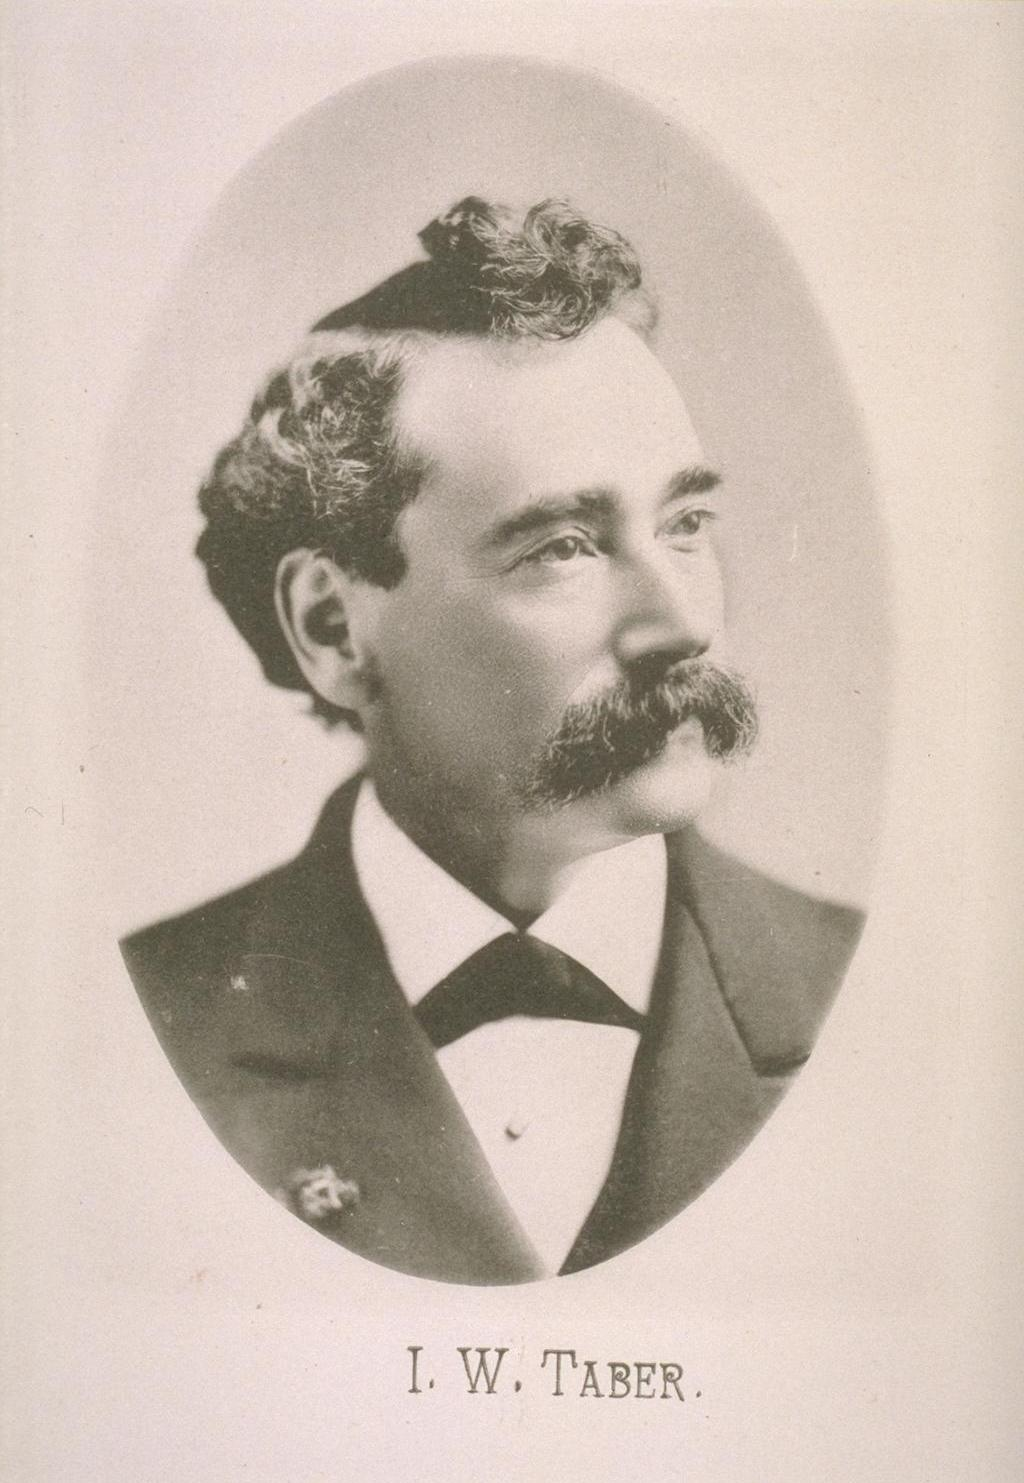 Image of Isaiah West Taber from Wikidata